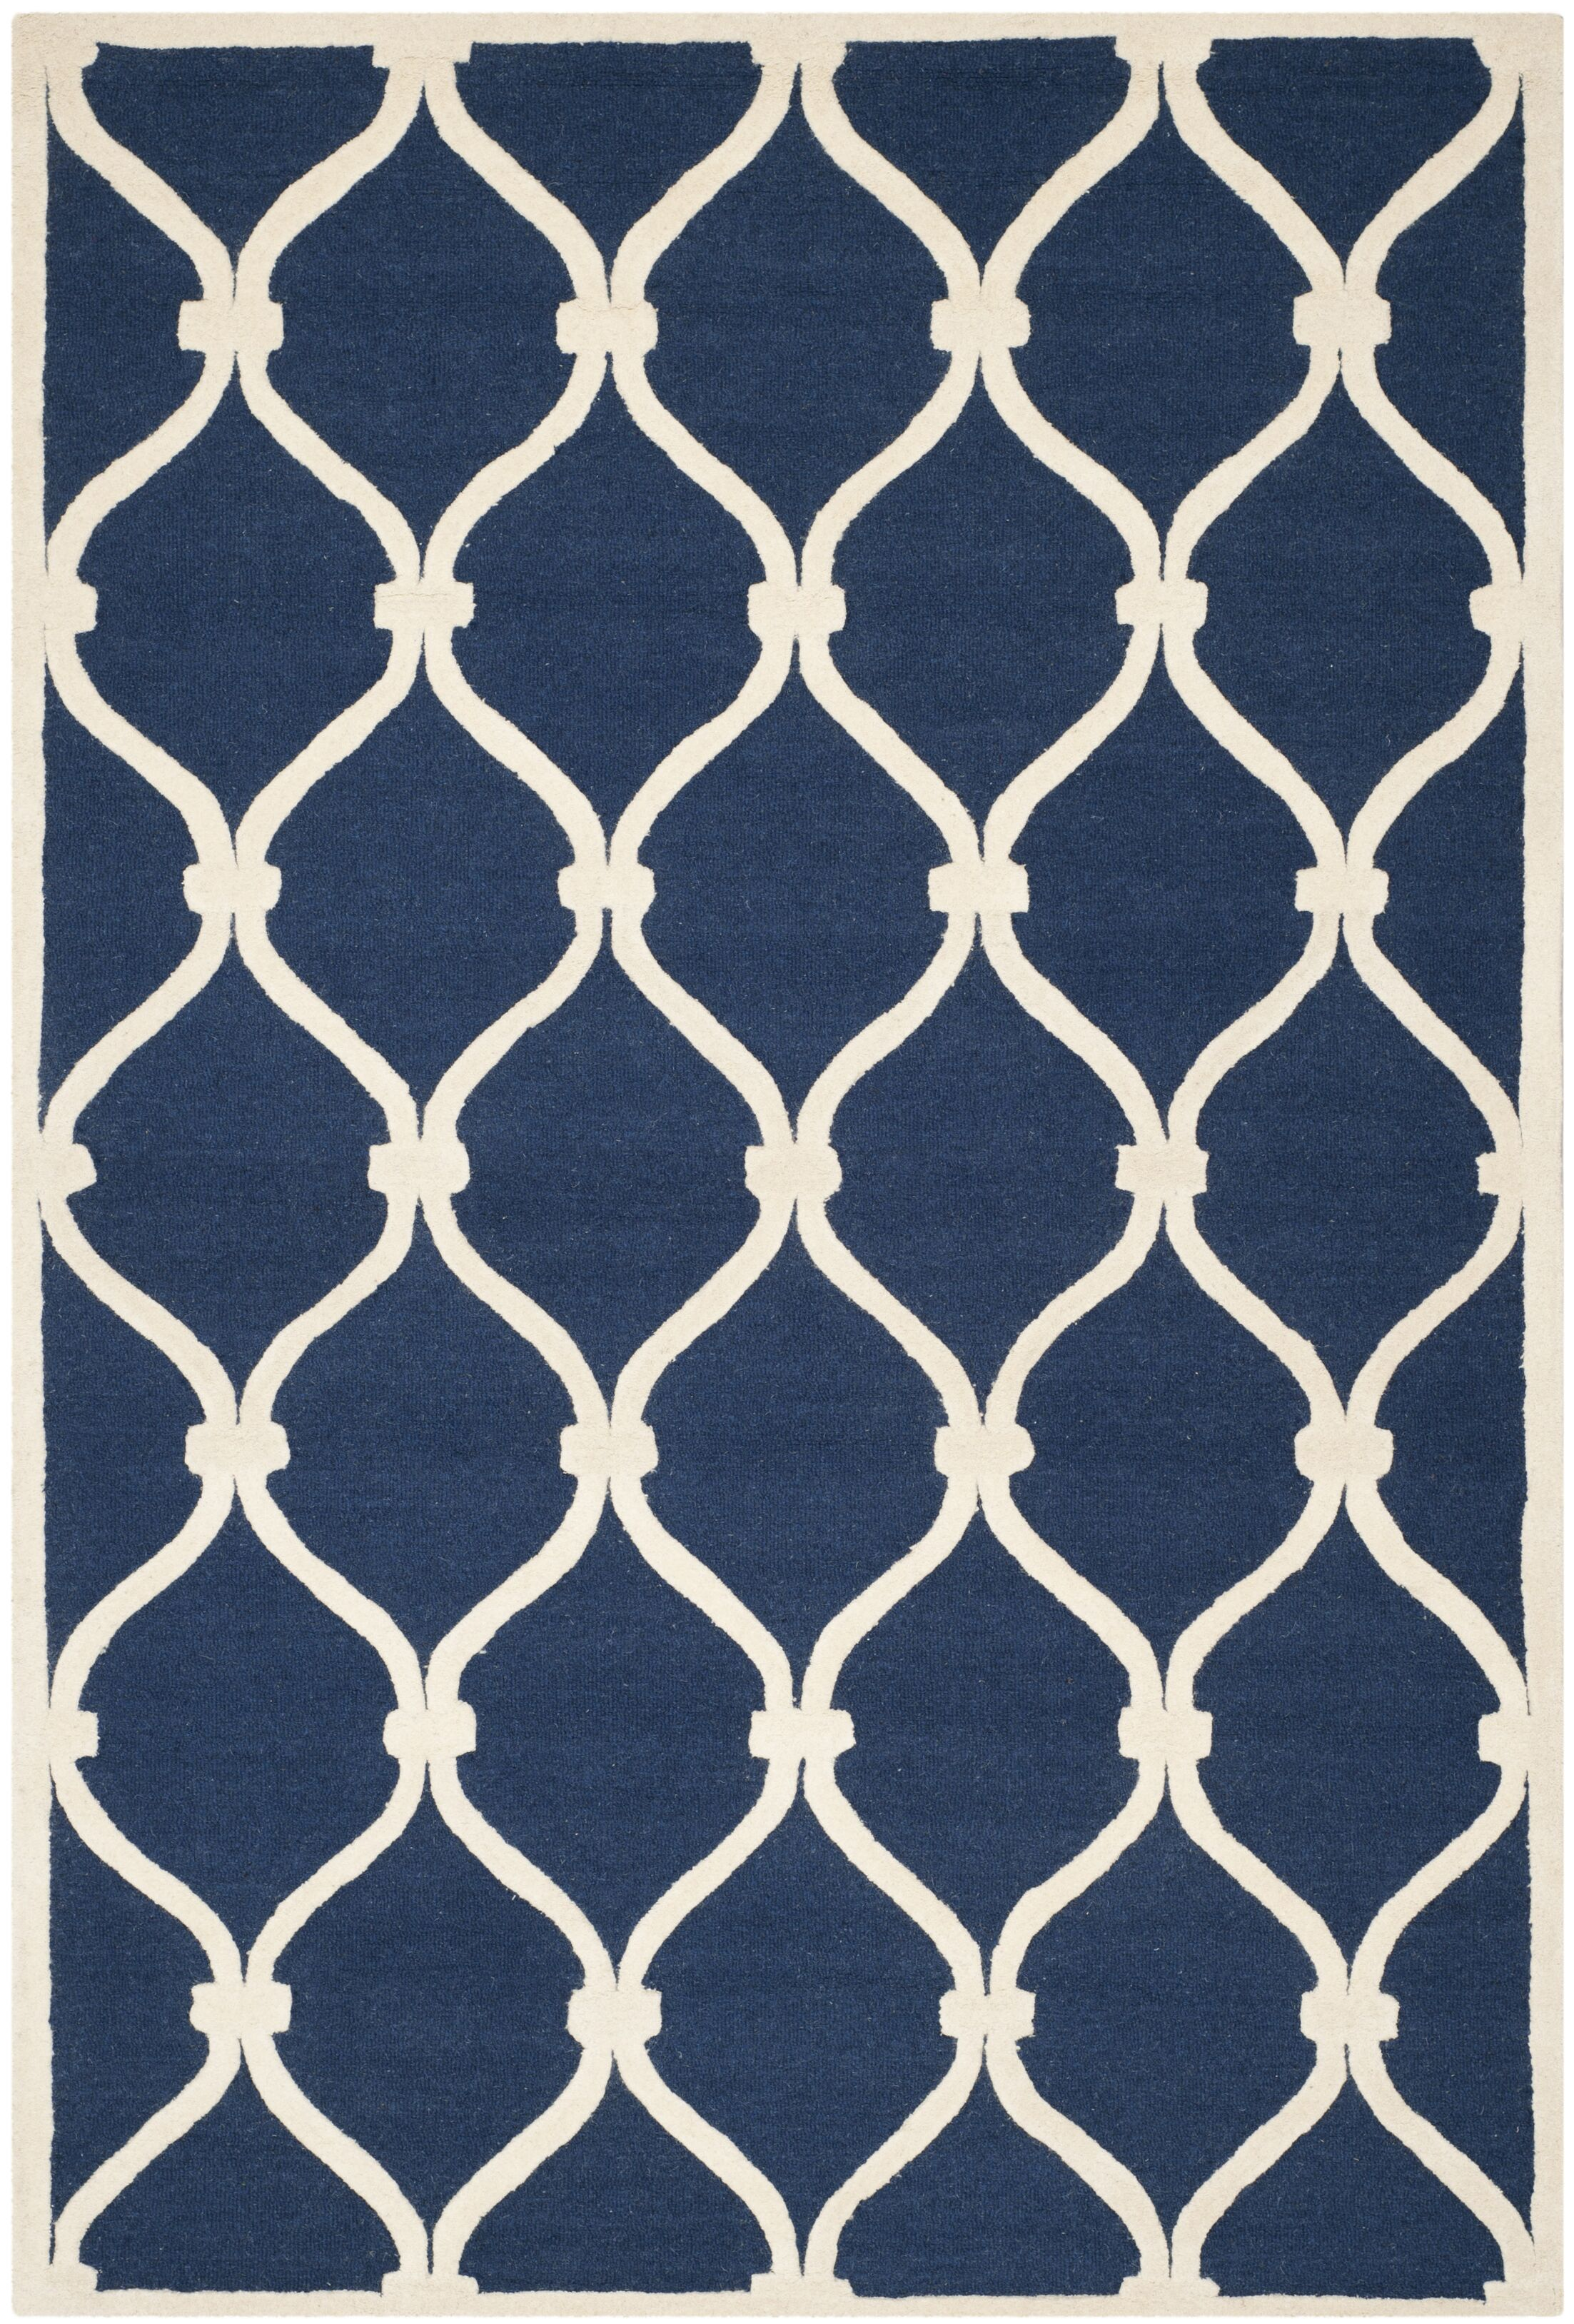 Leighton Wool Hand-Tufted Navy/Ivory Area Rug Rug Size: Rectangle 8' x 10'